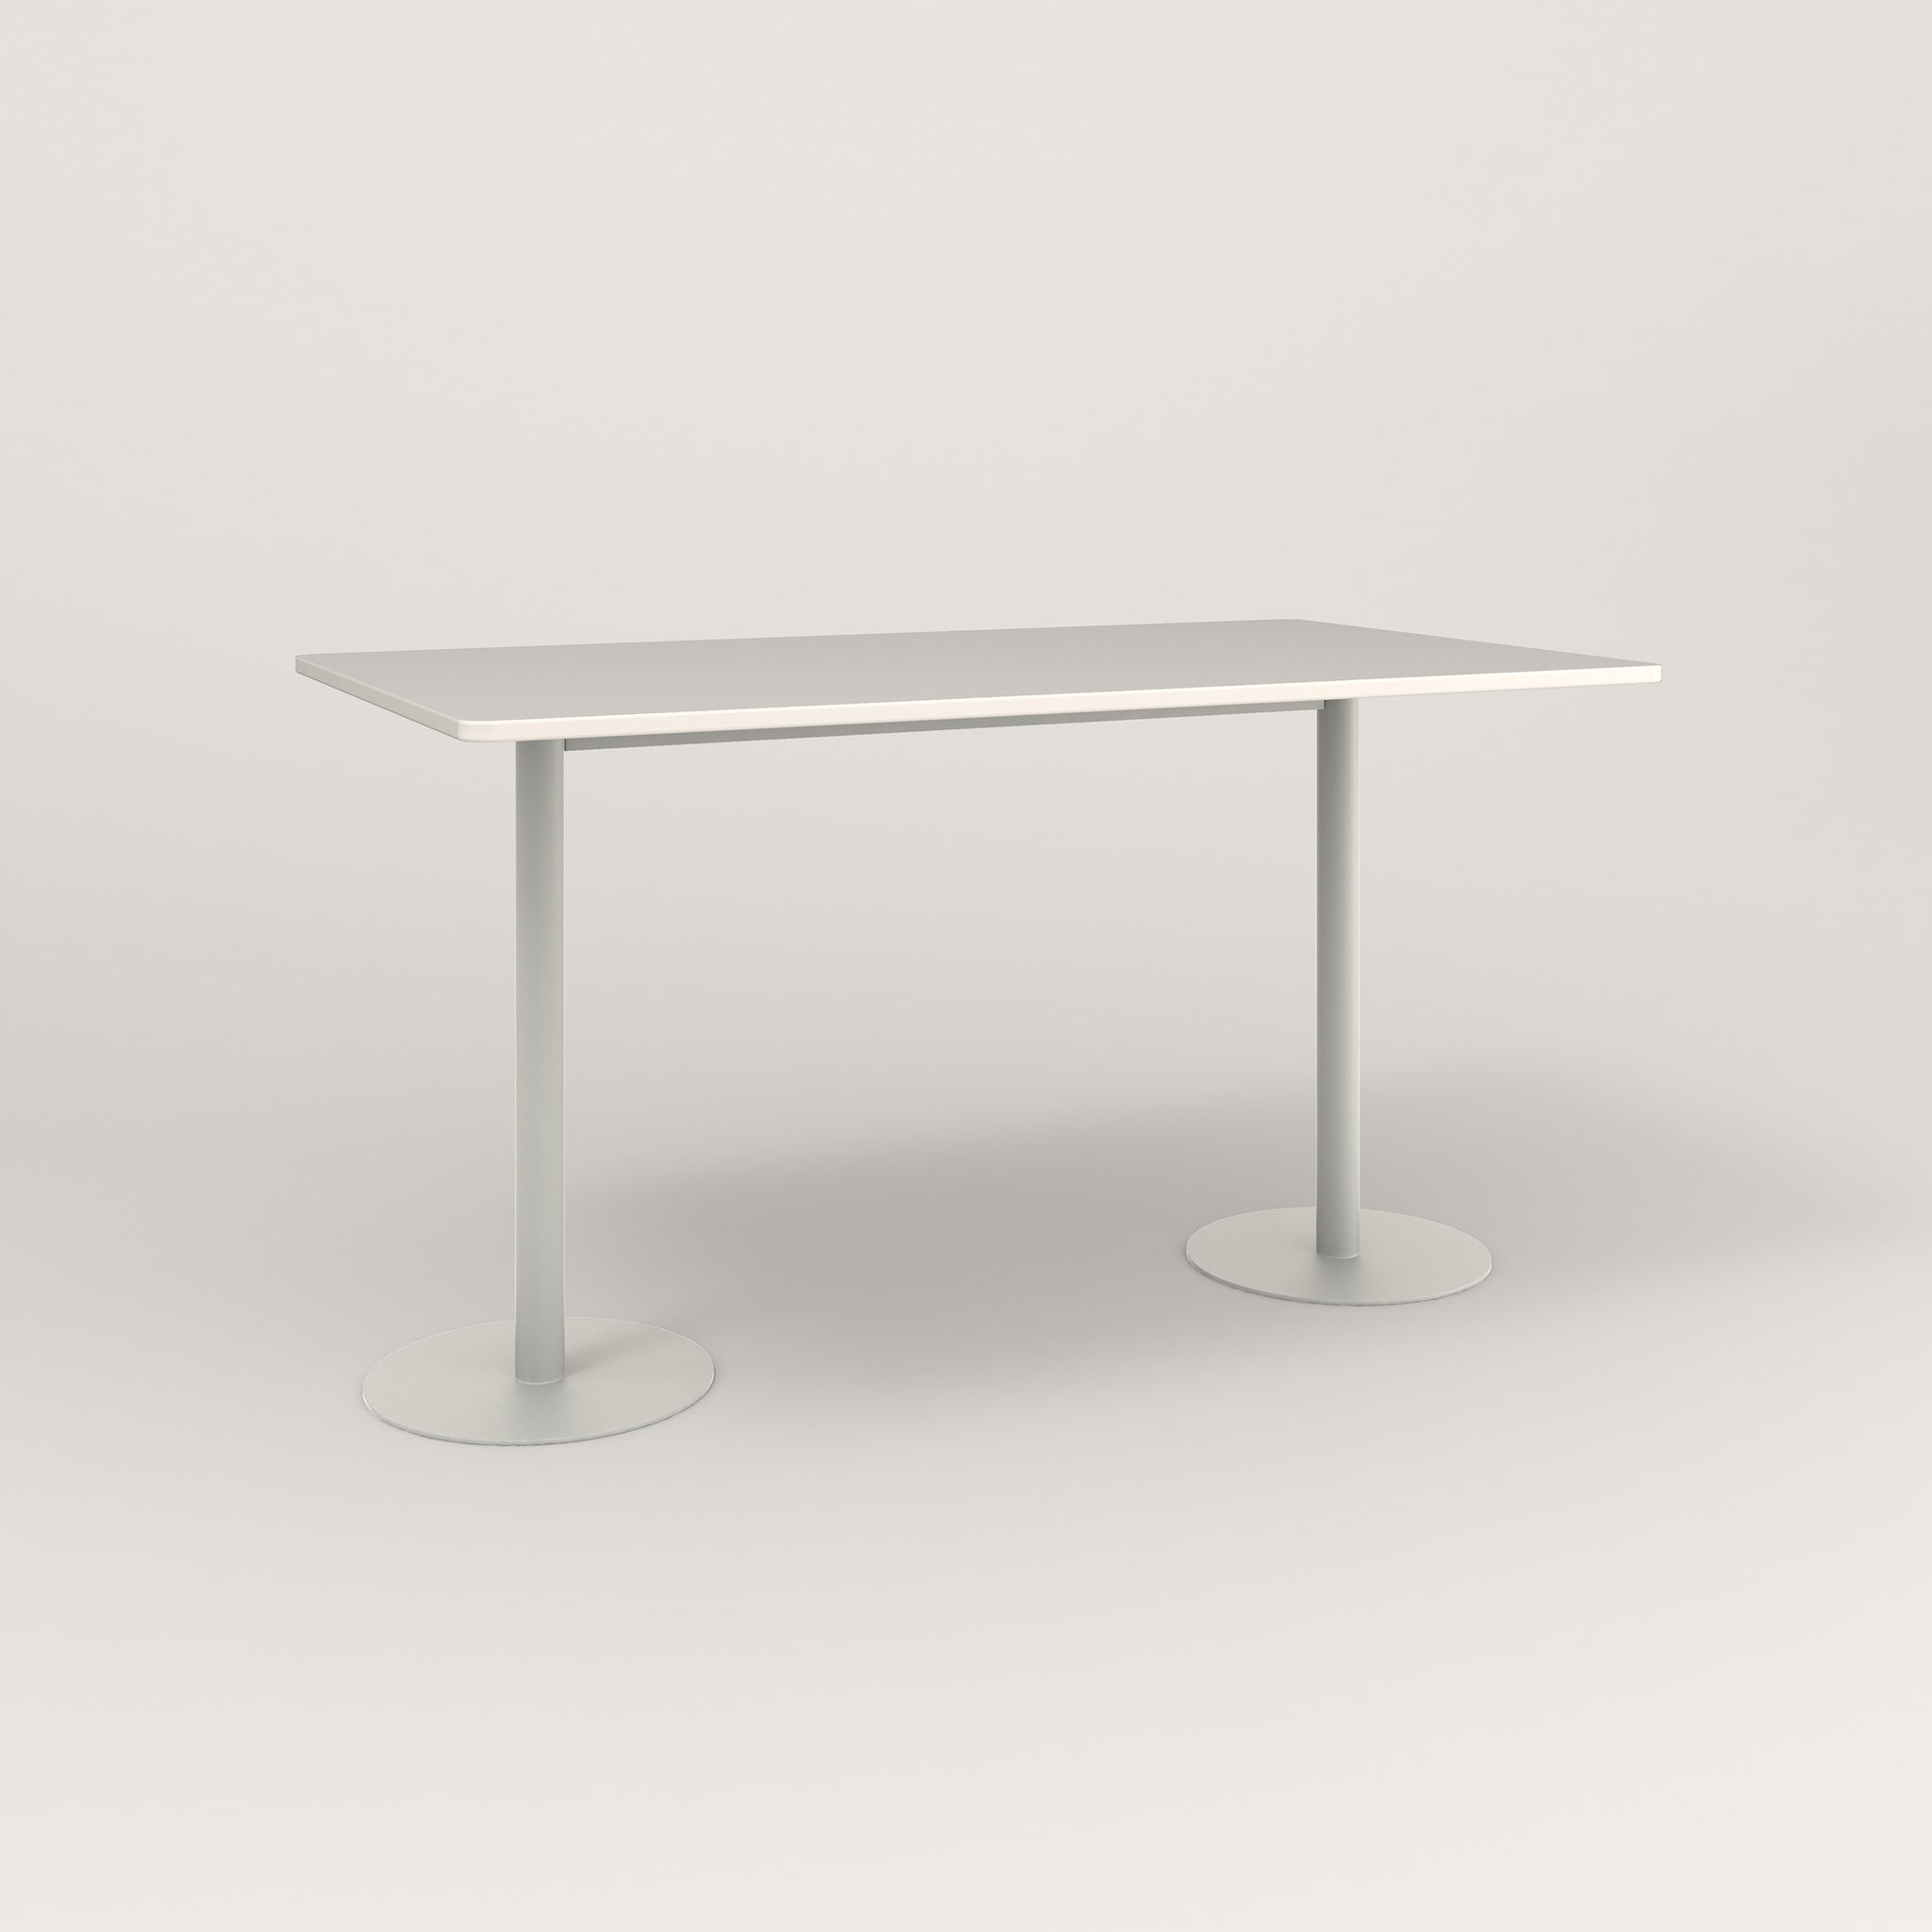 RAD Cafe Table, Rectangular Weighted Base T Leg in acrylic and white powder coat.